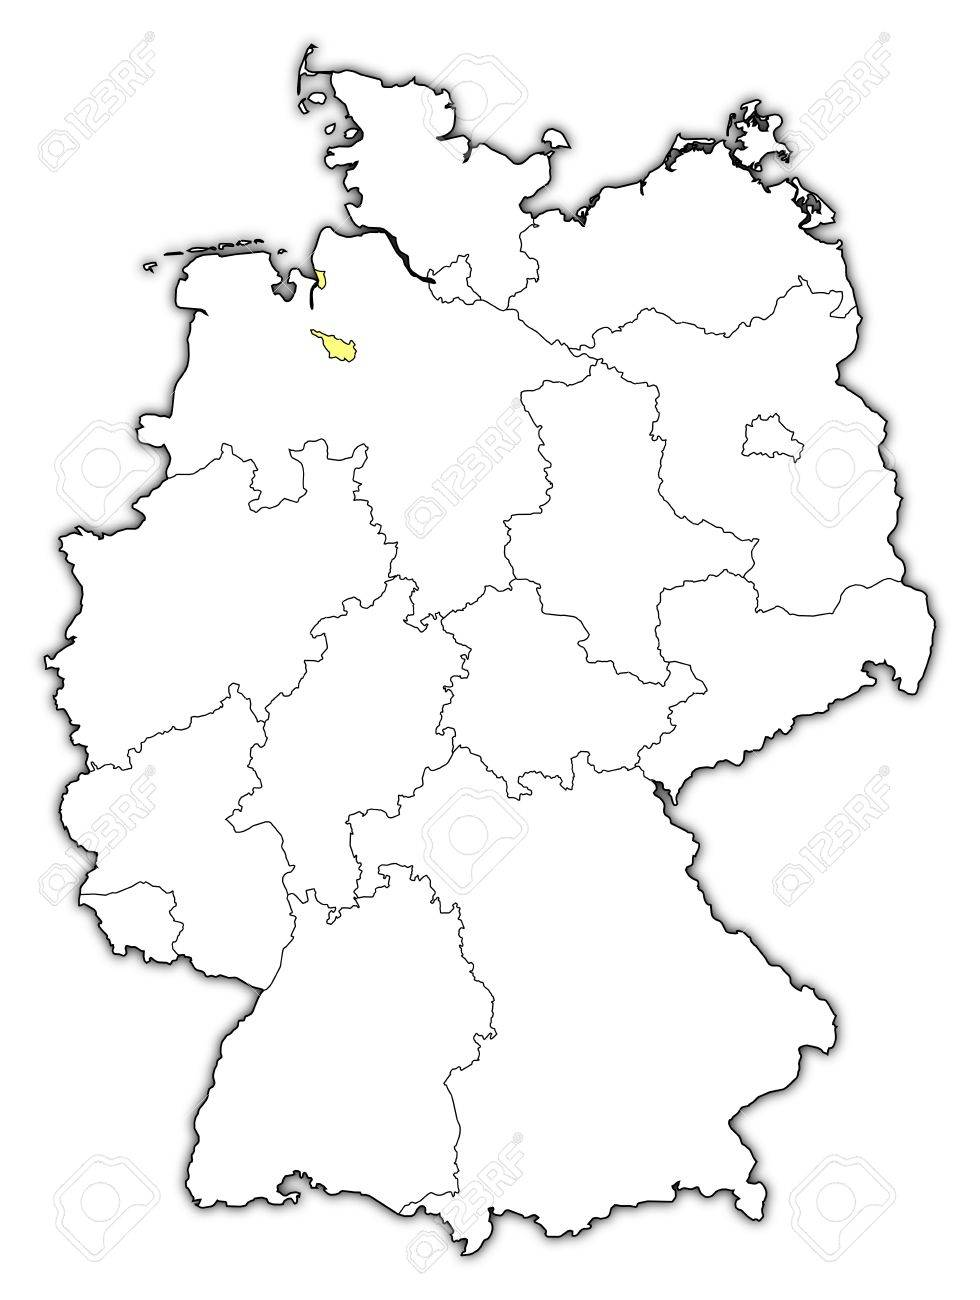 Political Map Of Germany With The Several States Where Bremen - Germany map outline